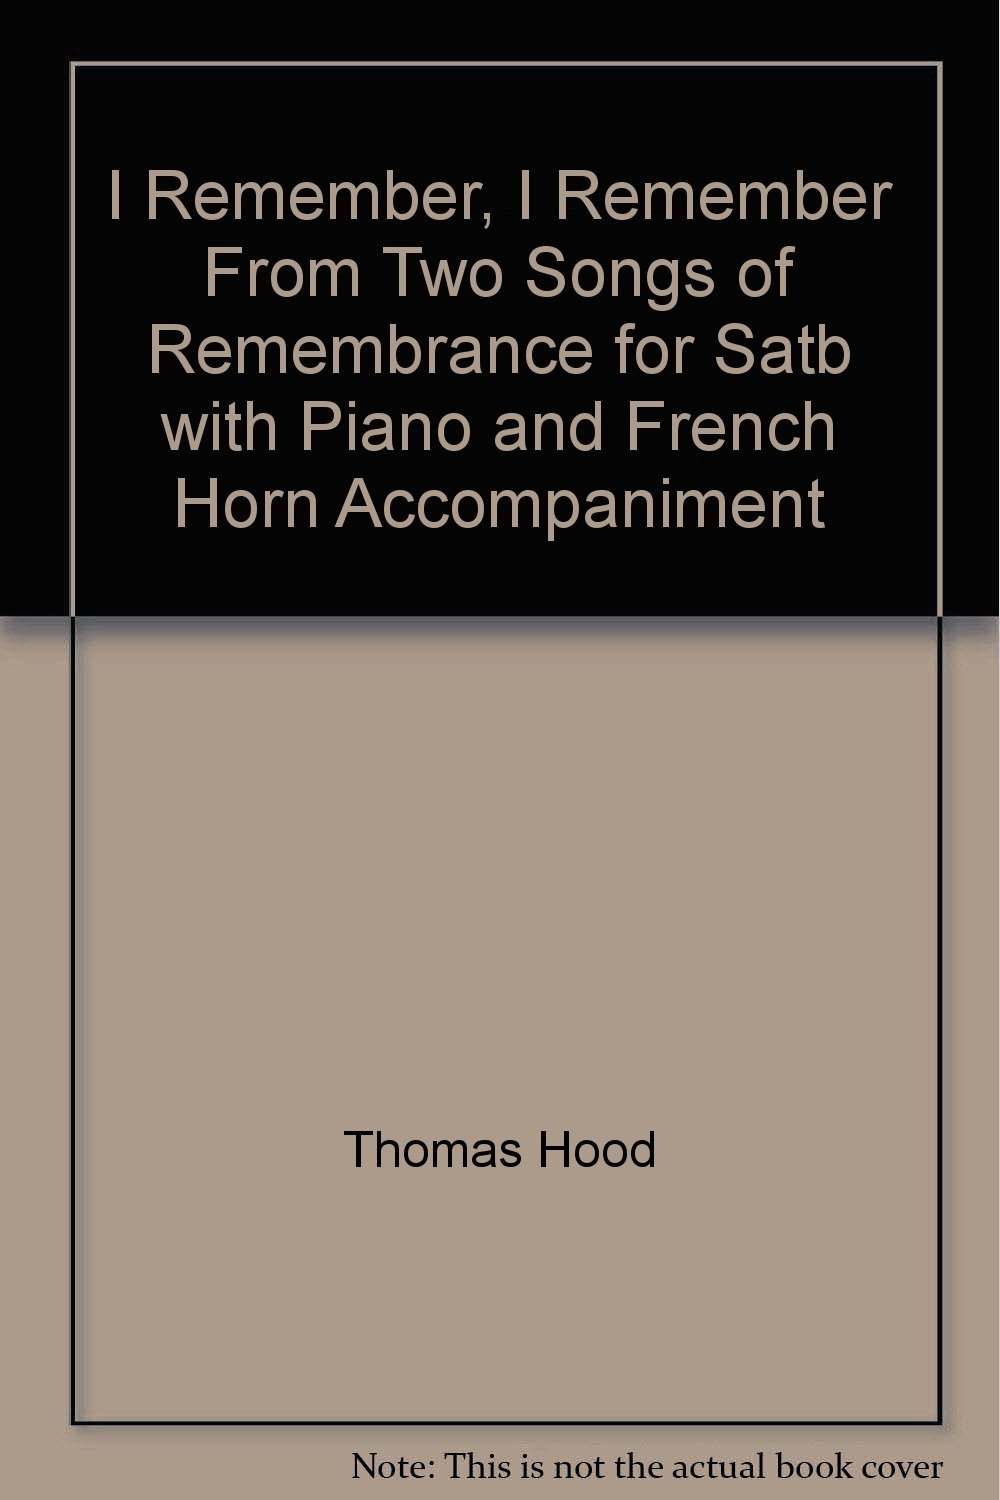 i-remember-i-remember-from-two-songs-of-remembrance-for-satb-with-piano-and-french-horn-accompaniment